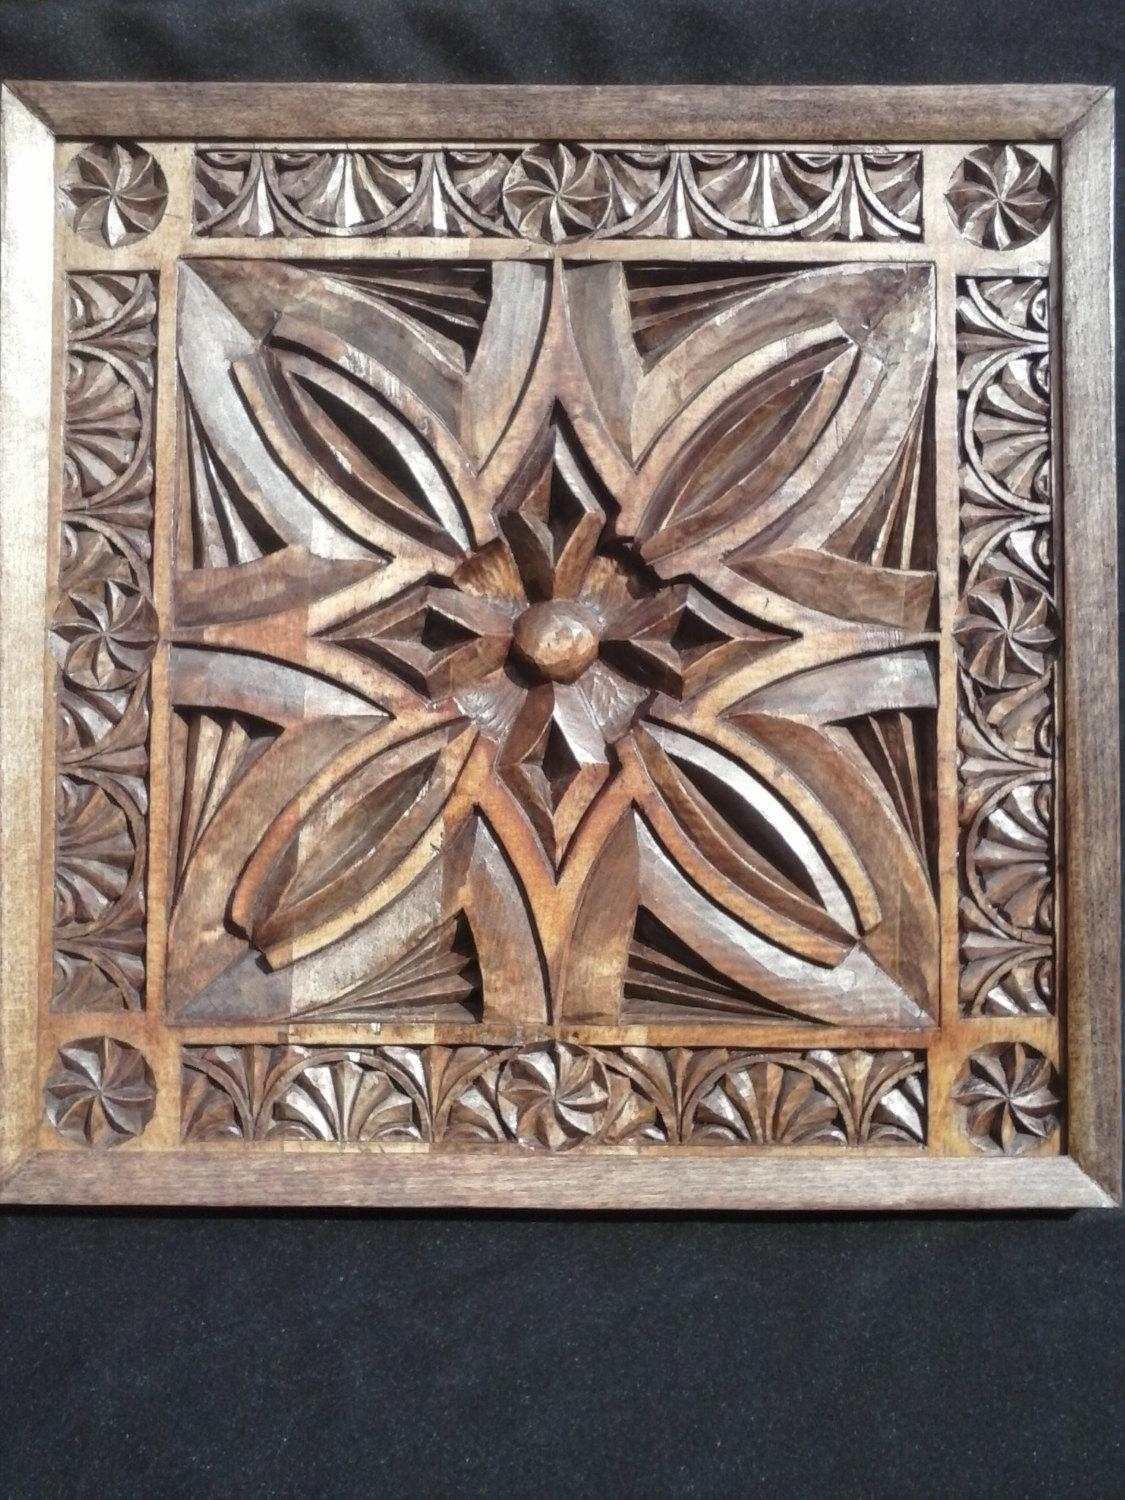 Carved Wood Wall Hanging 20 Photos Wood Carved Wall Art Panels Wall Art Ideas